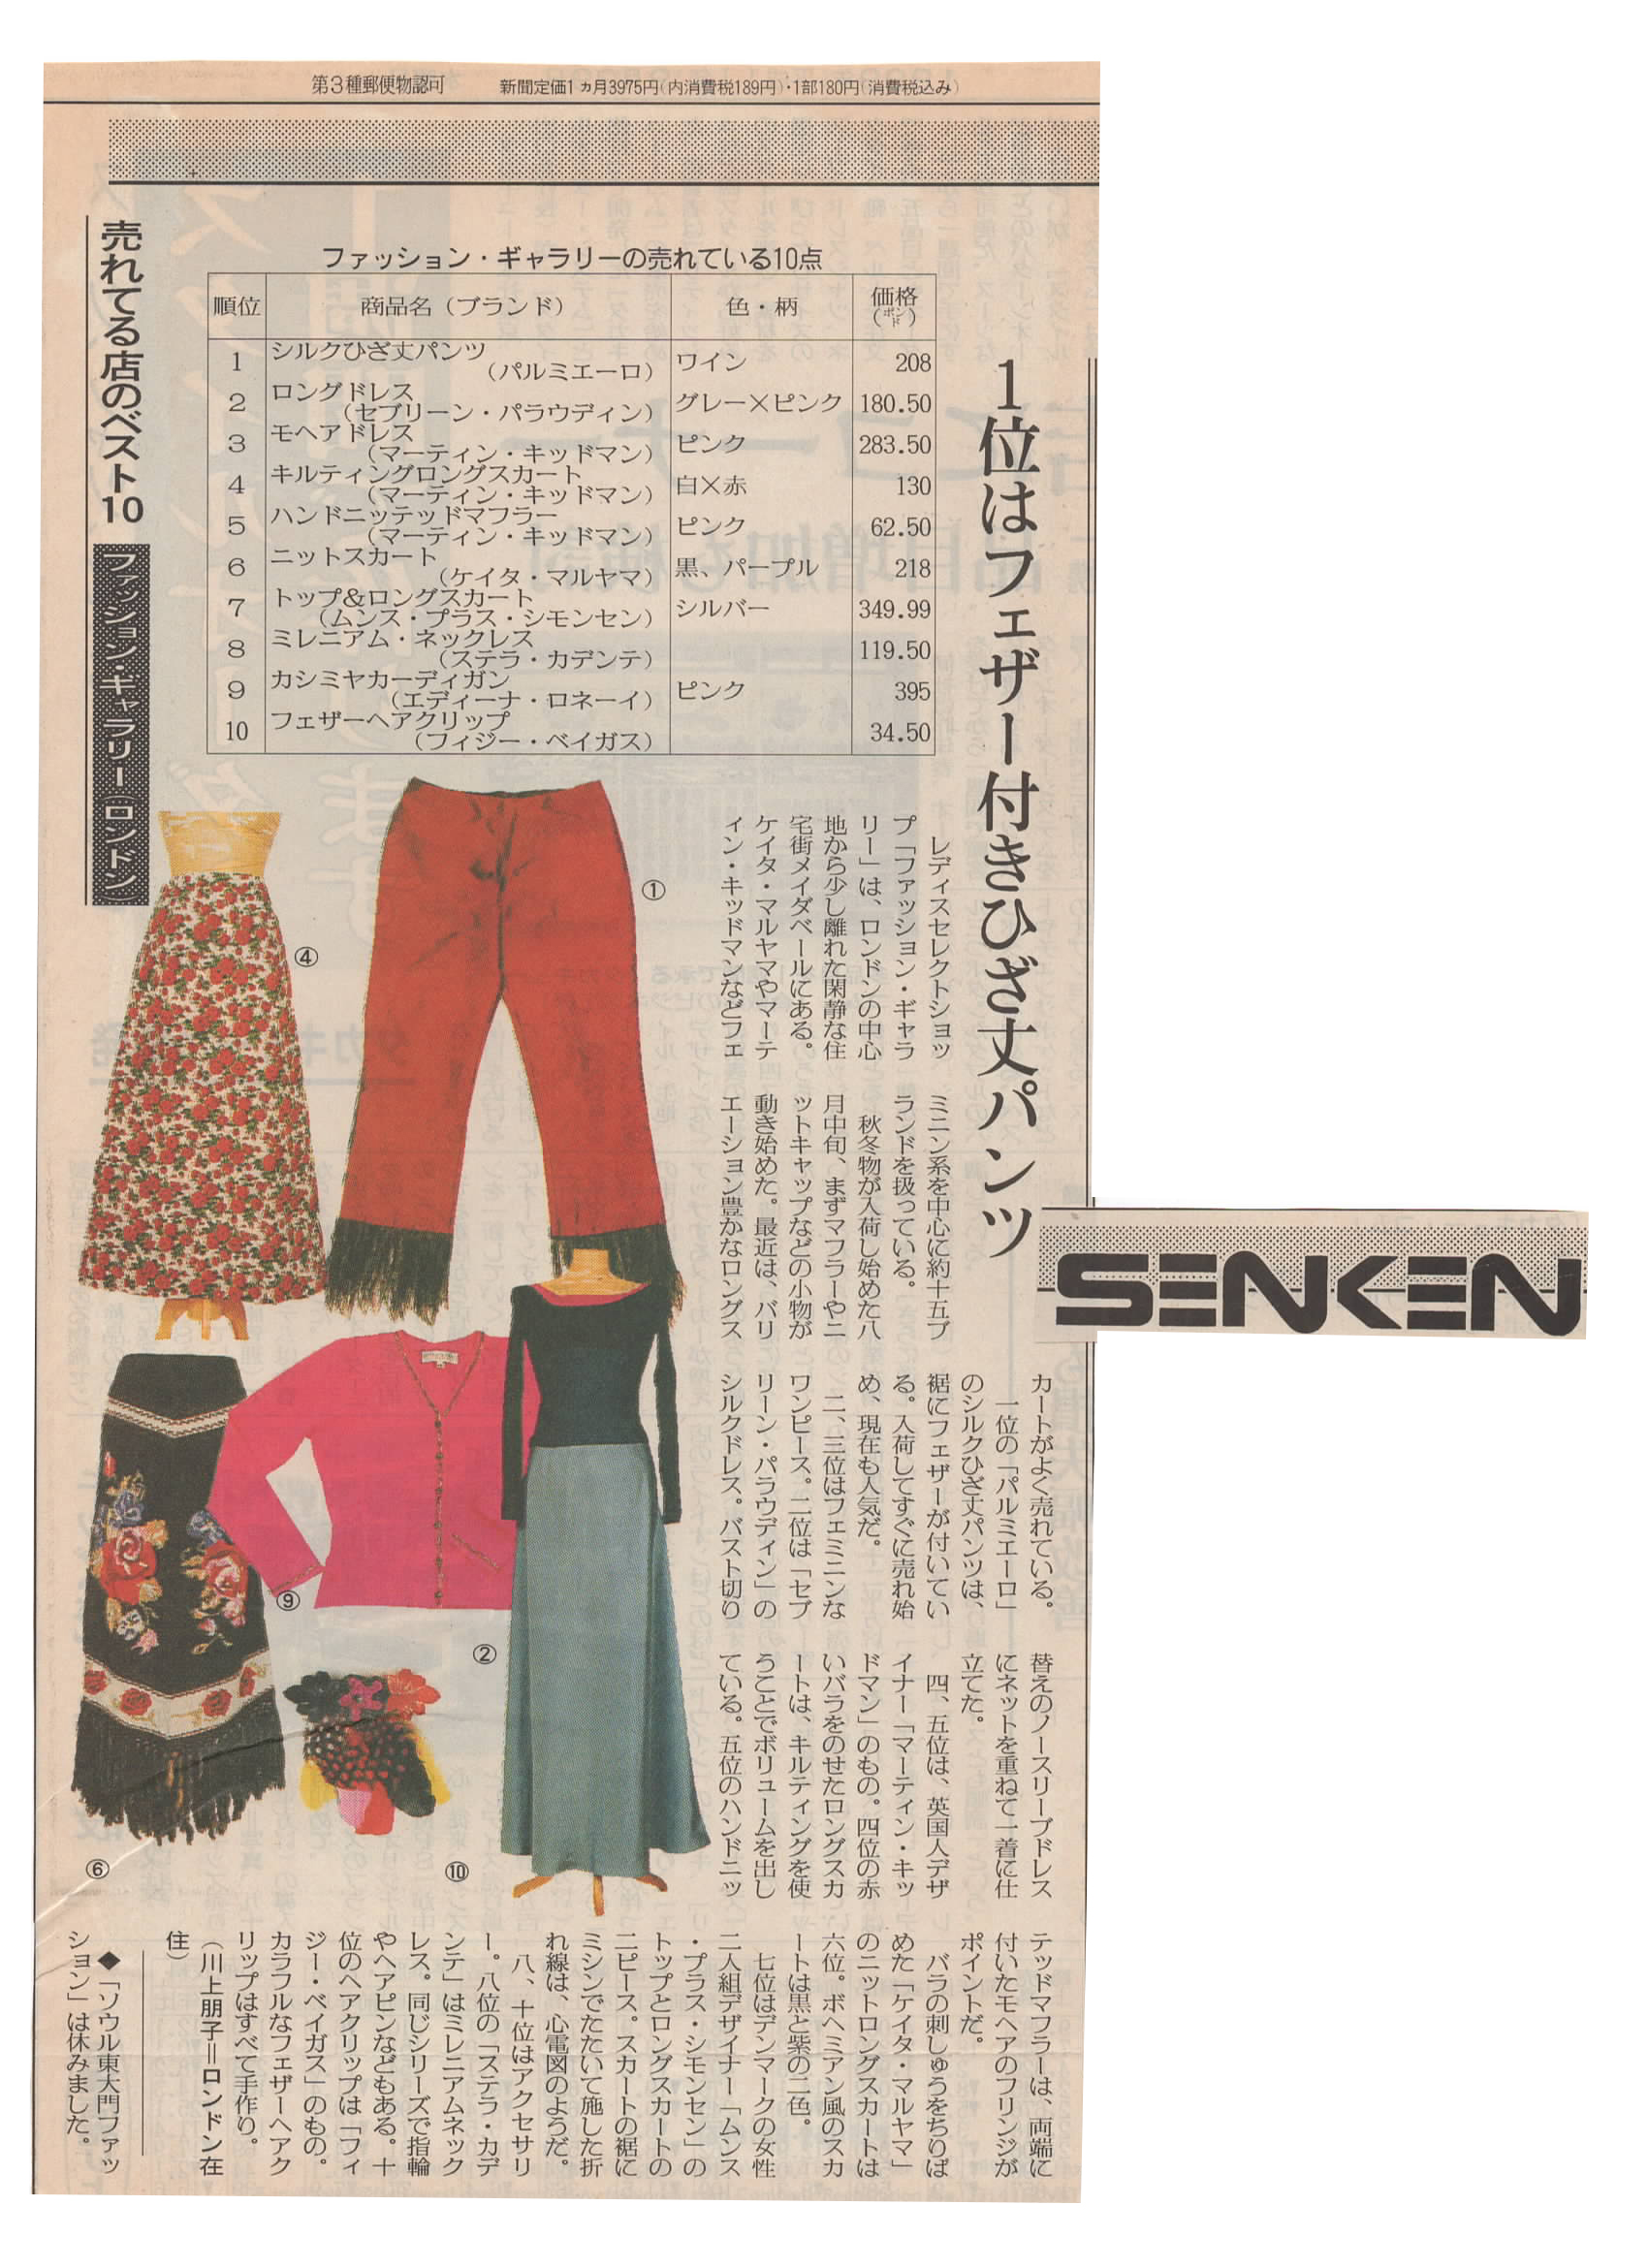 Selection of items - Senken